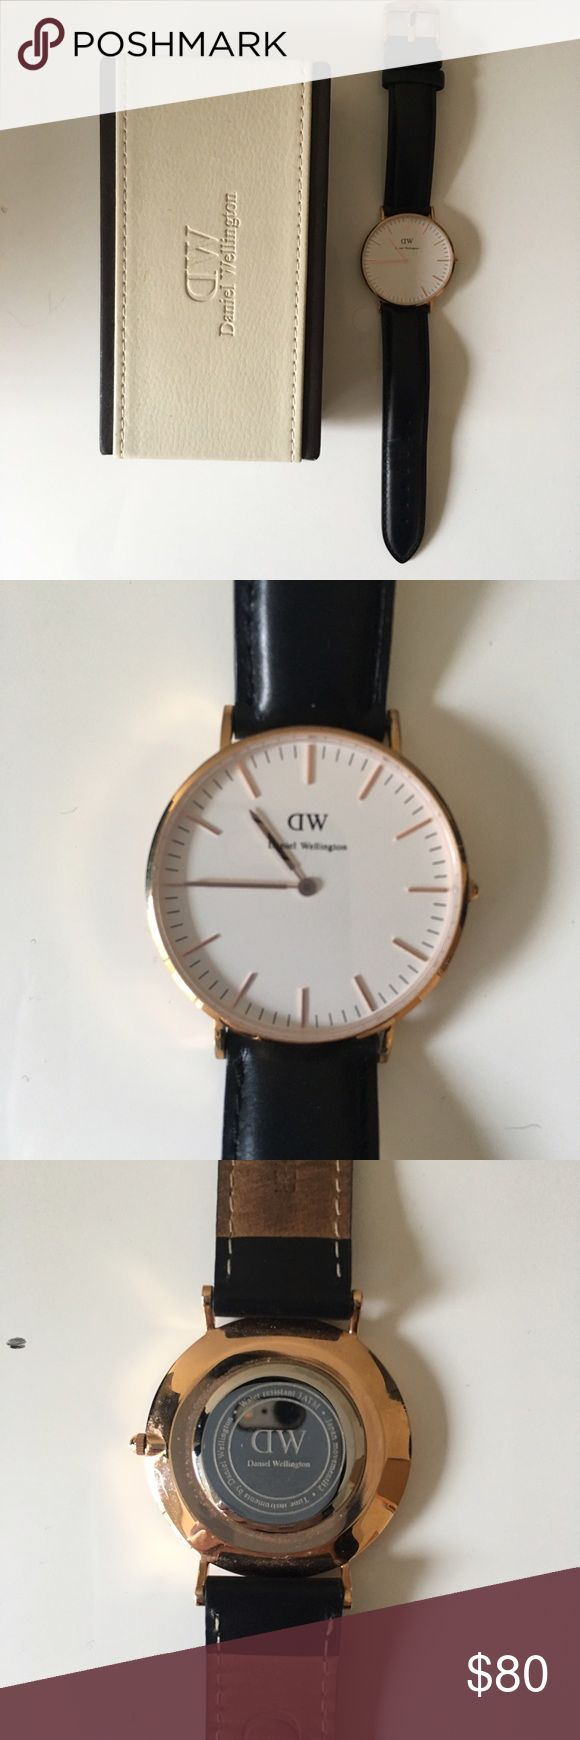 Authentic Daniel Wellington Sheffield Watch Authentic Daniel Wellington Classic Sheffield Watch. In like new condition -Only worn a couple of times. Size: 36mm, strap width: 18mm. Black leather strap, eggshell white face with rose gold details. Daniel Wellington Accessories Watches